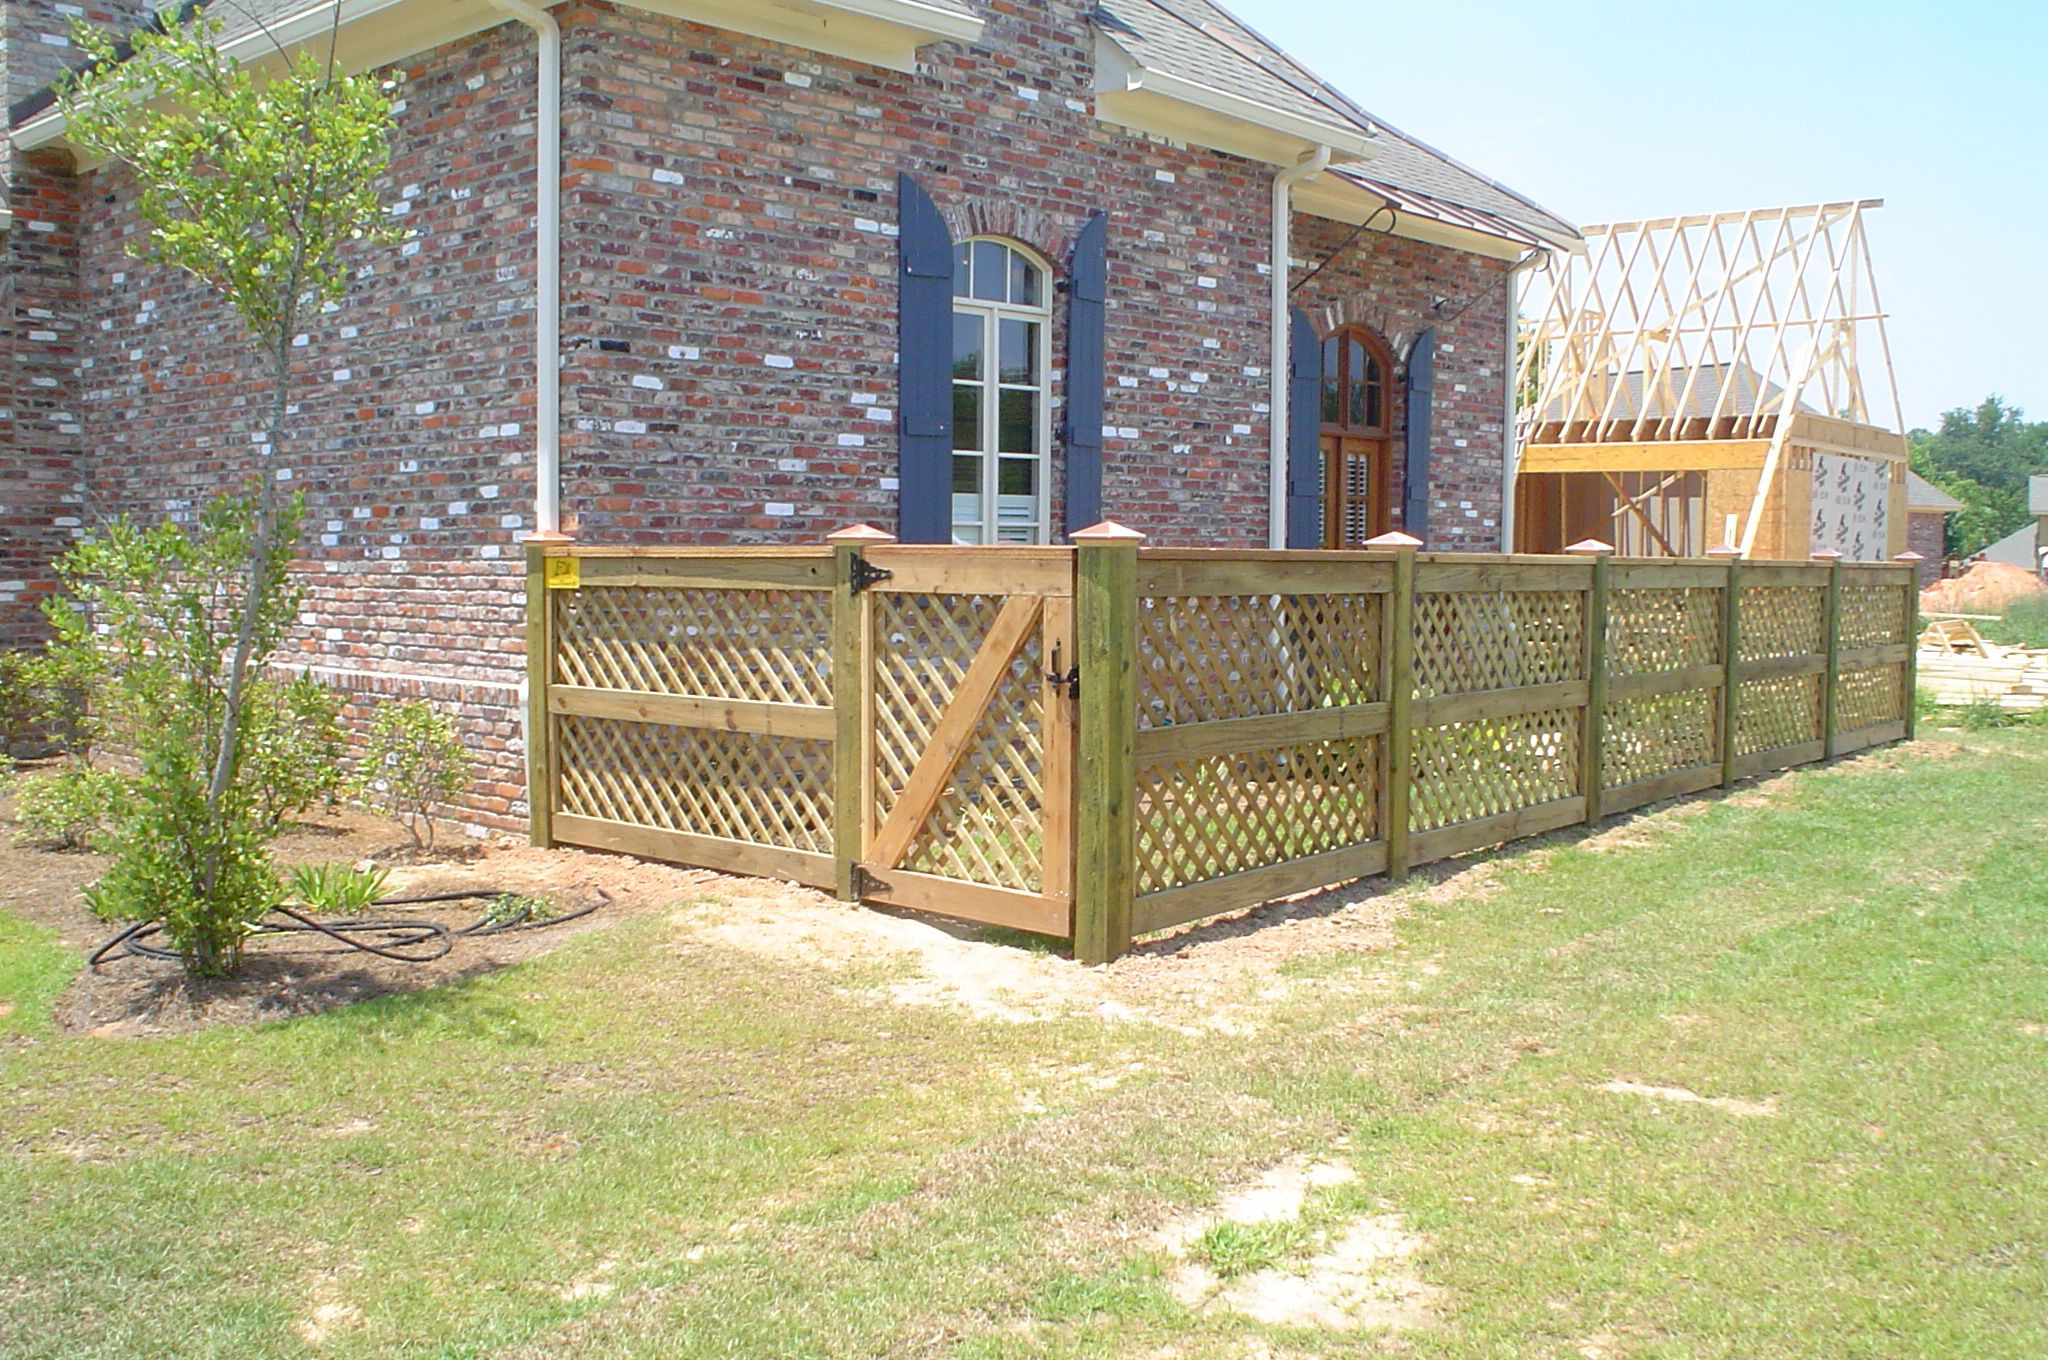 35 Amazing Backyard Fence for Dogs - Home, Family, Style ...